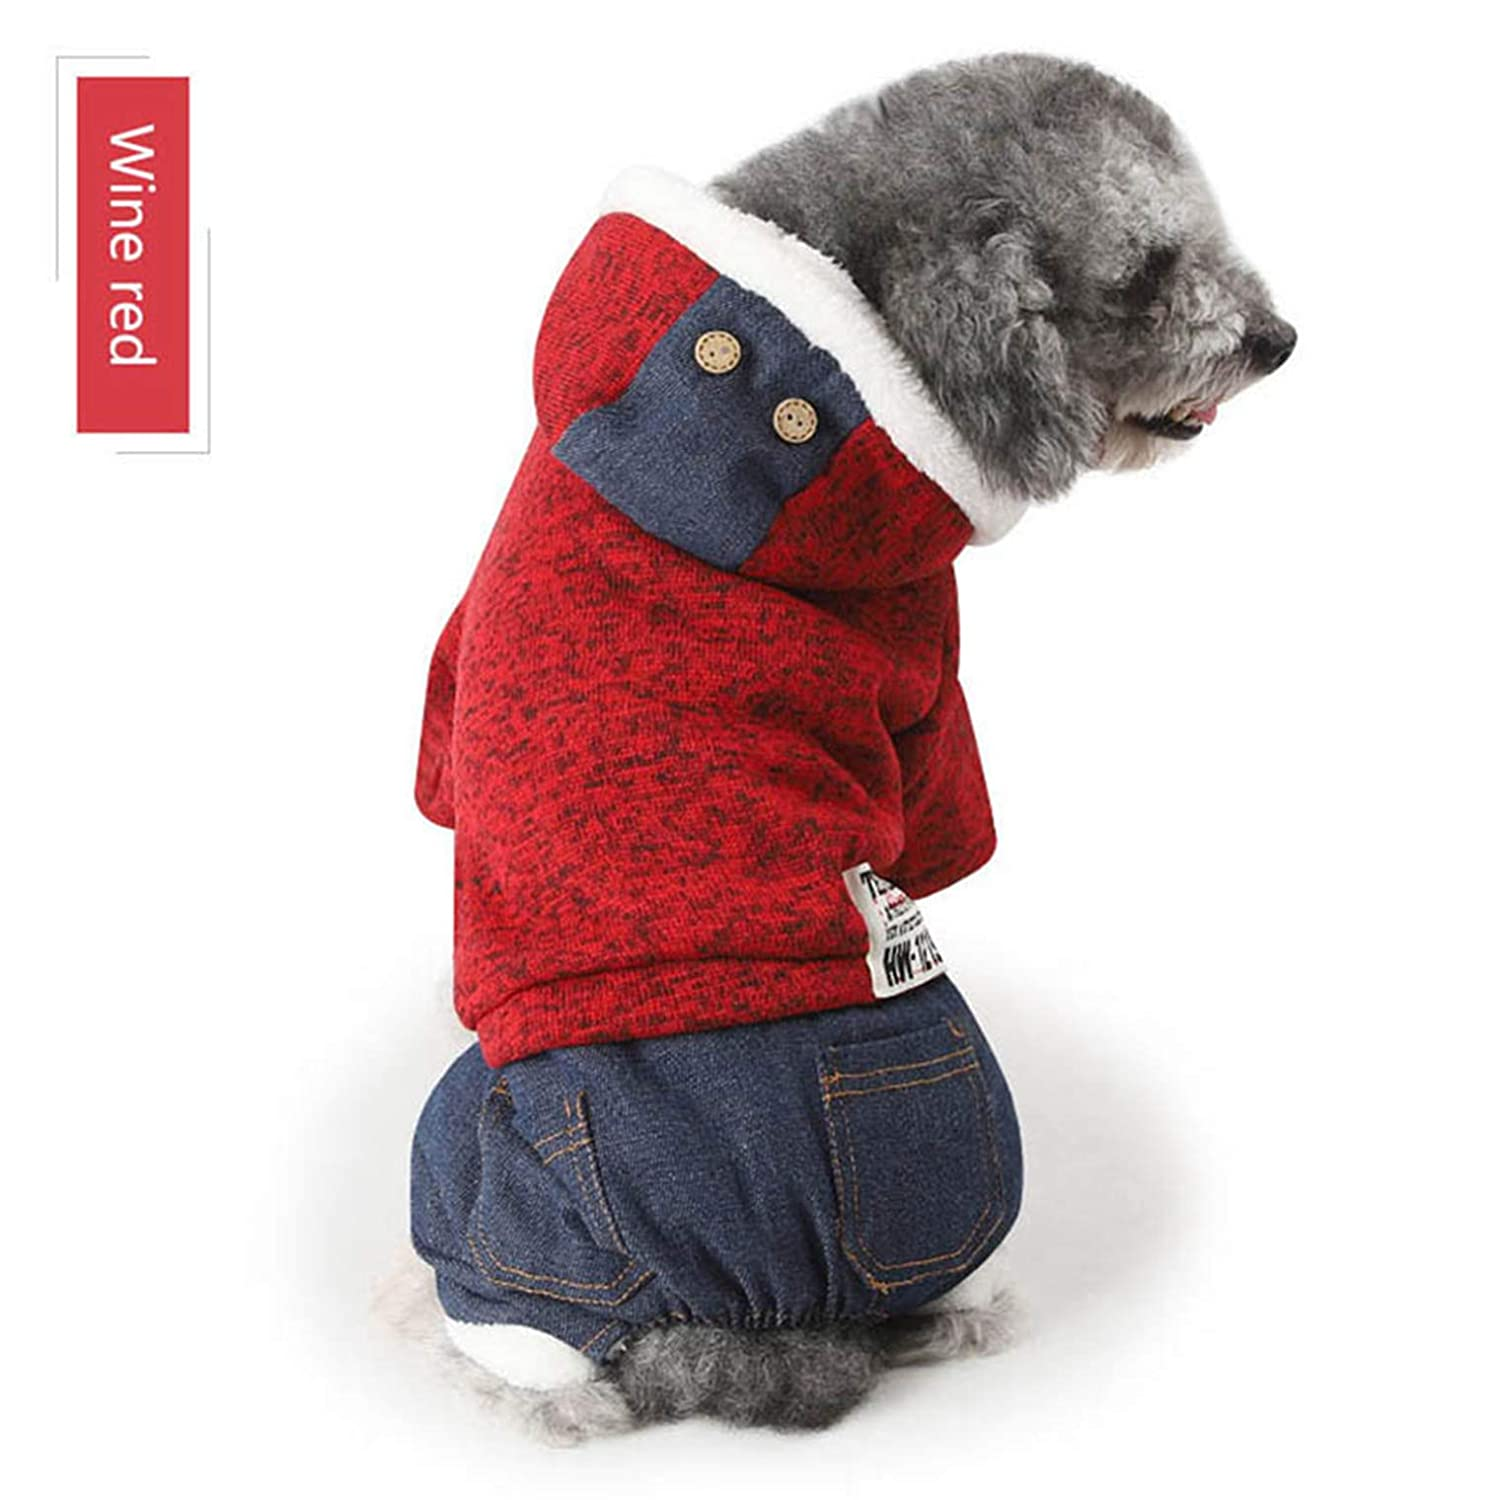 RED S RED S SENERY Winter Pet Dog Clothing Coat,Cats Knit Craft Print Soft Cotton Padded Clothes Puppy Coats Jackets Teddy Supplies